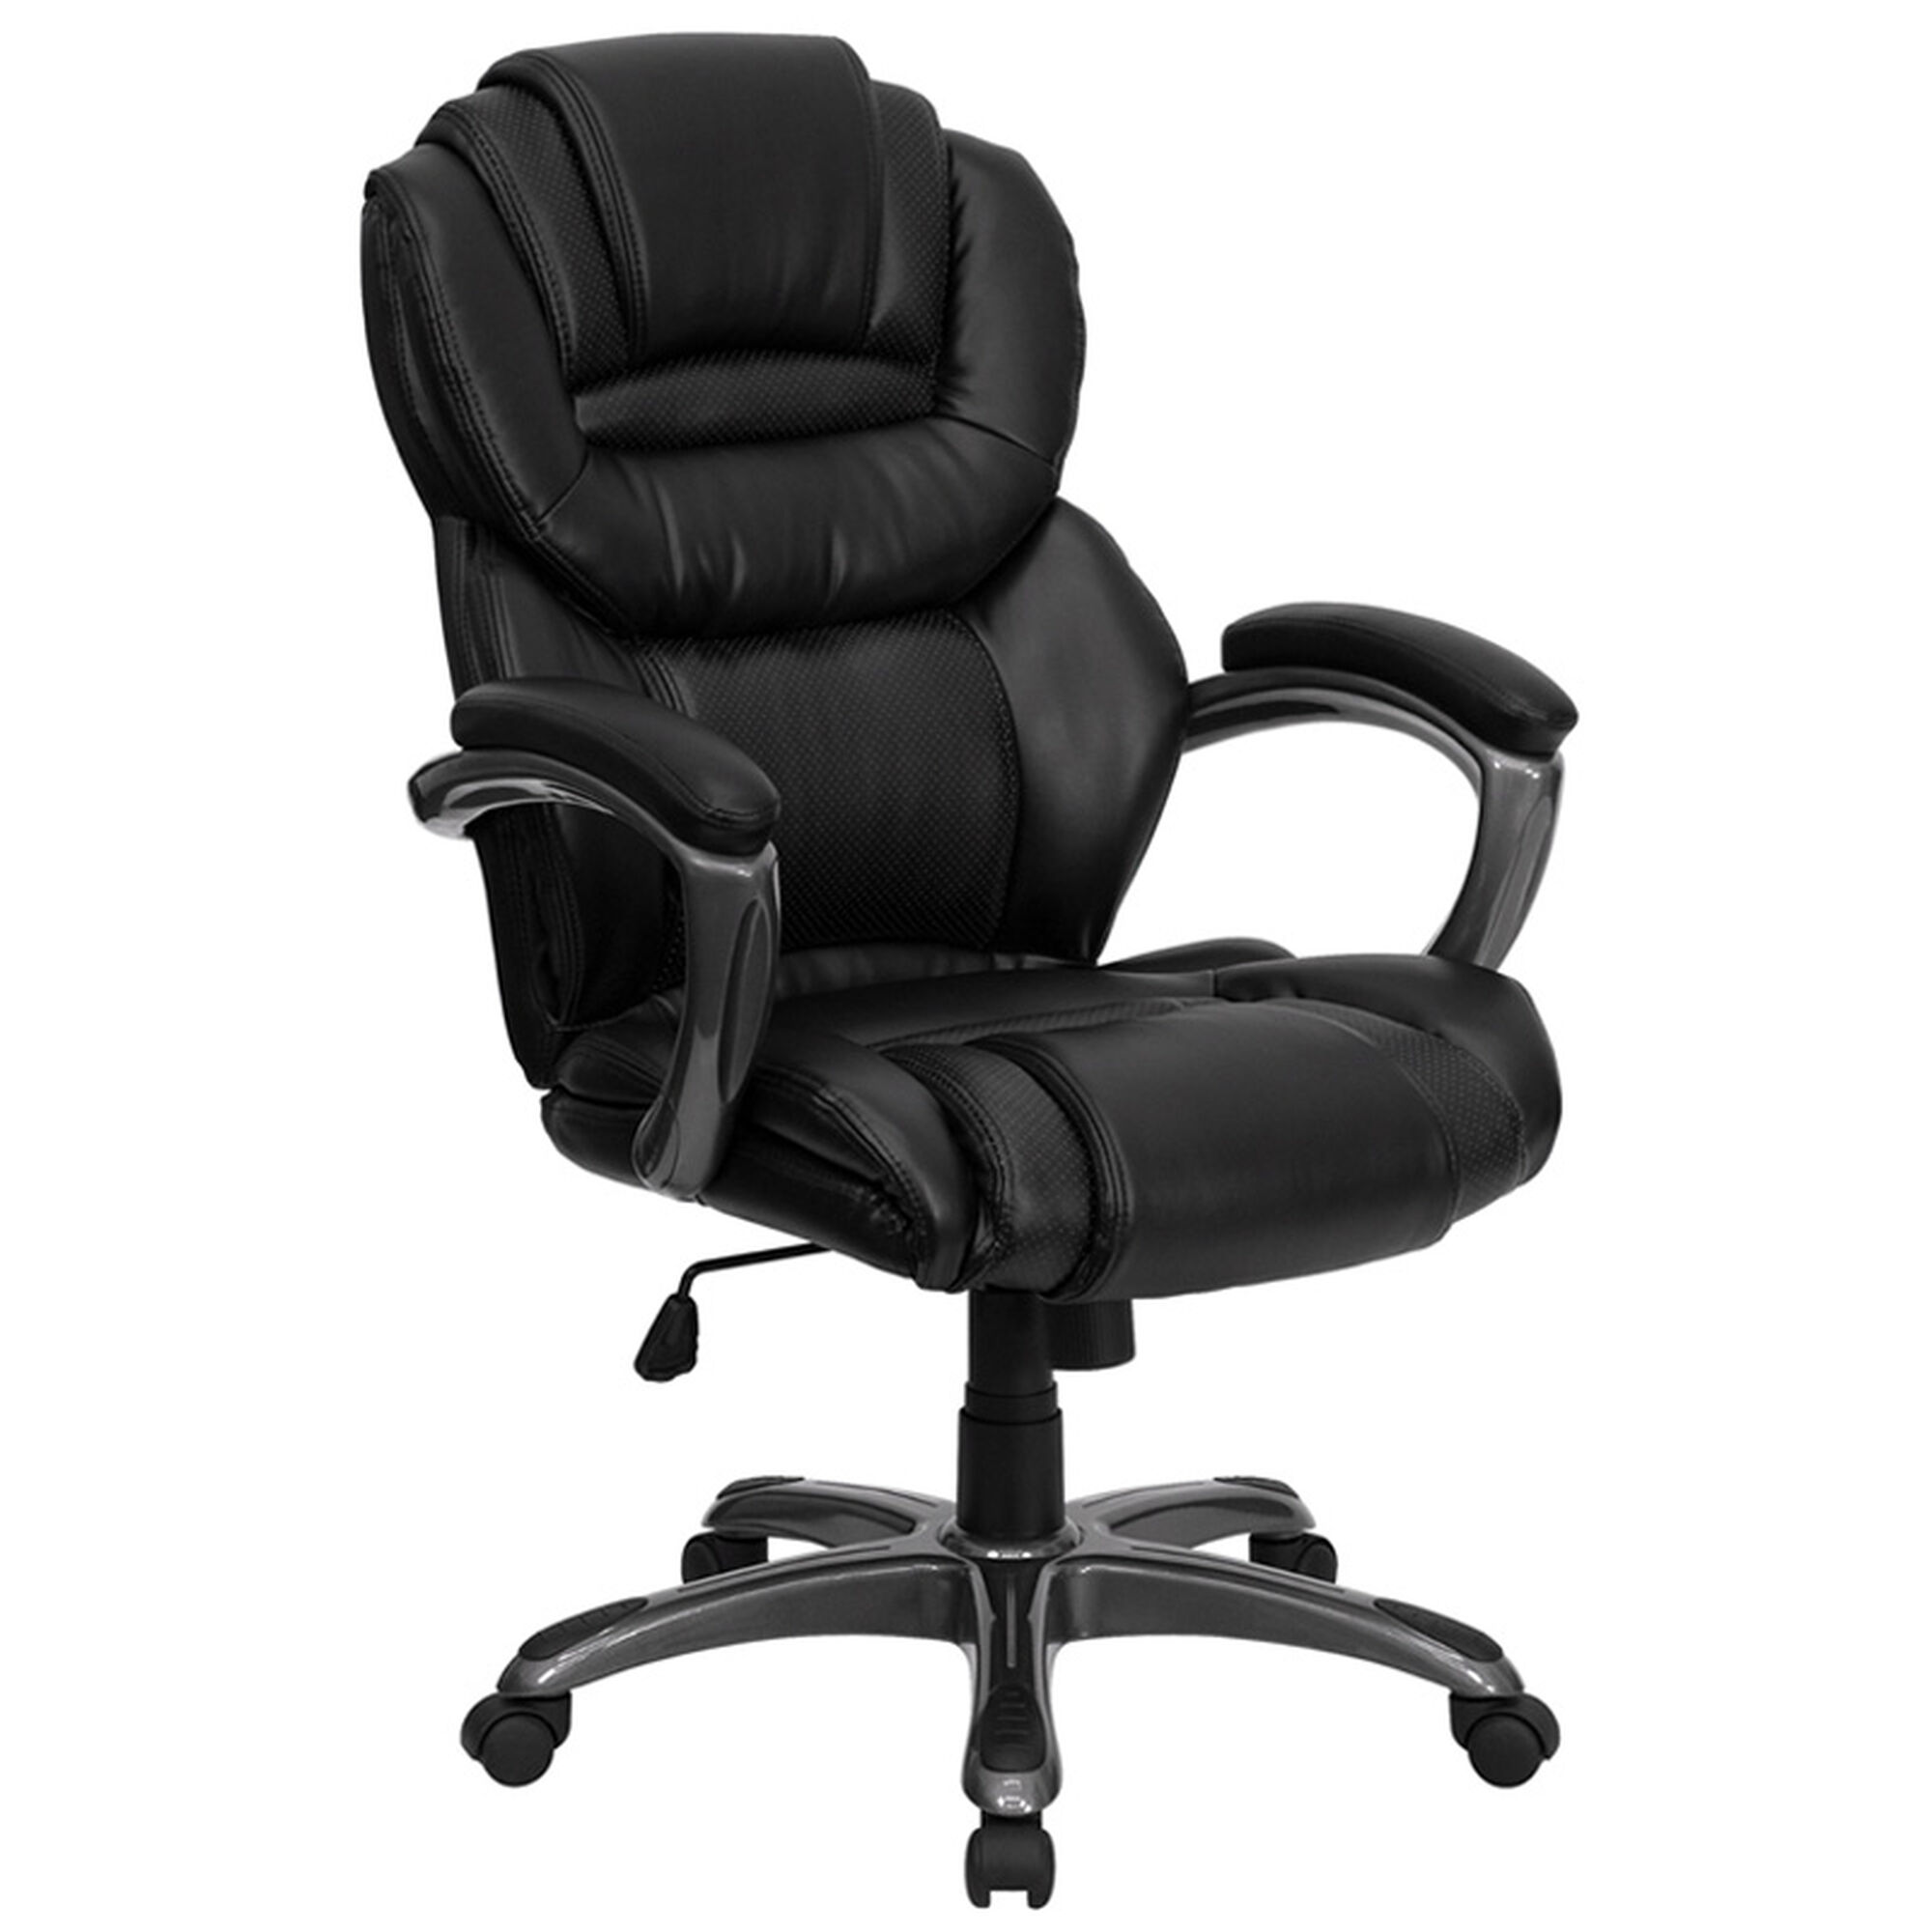 Baseball desk chair - High Back Black Leather Executive Swivel Chair With Arms